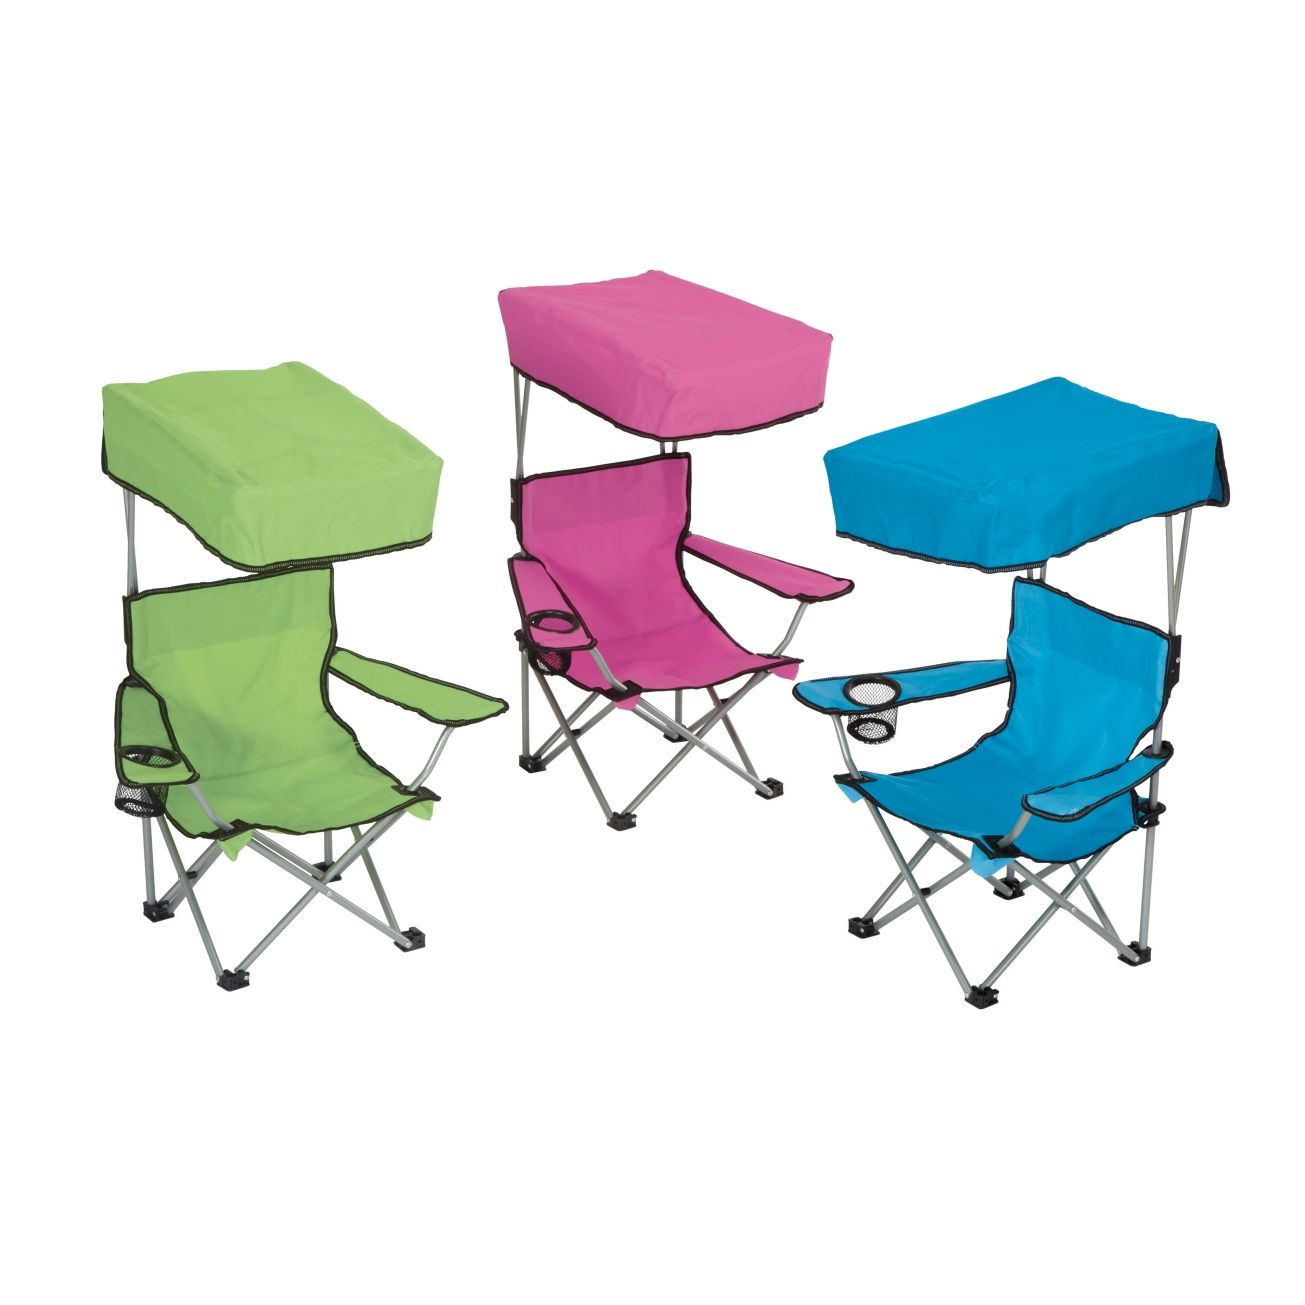 Soccer Mom Covered Chairs Black Cross Back Kitchen Sport With Canopy And Ultimate Spectator Chair